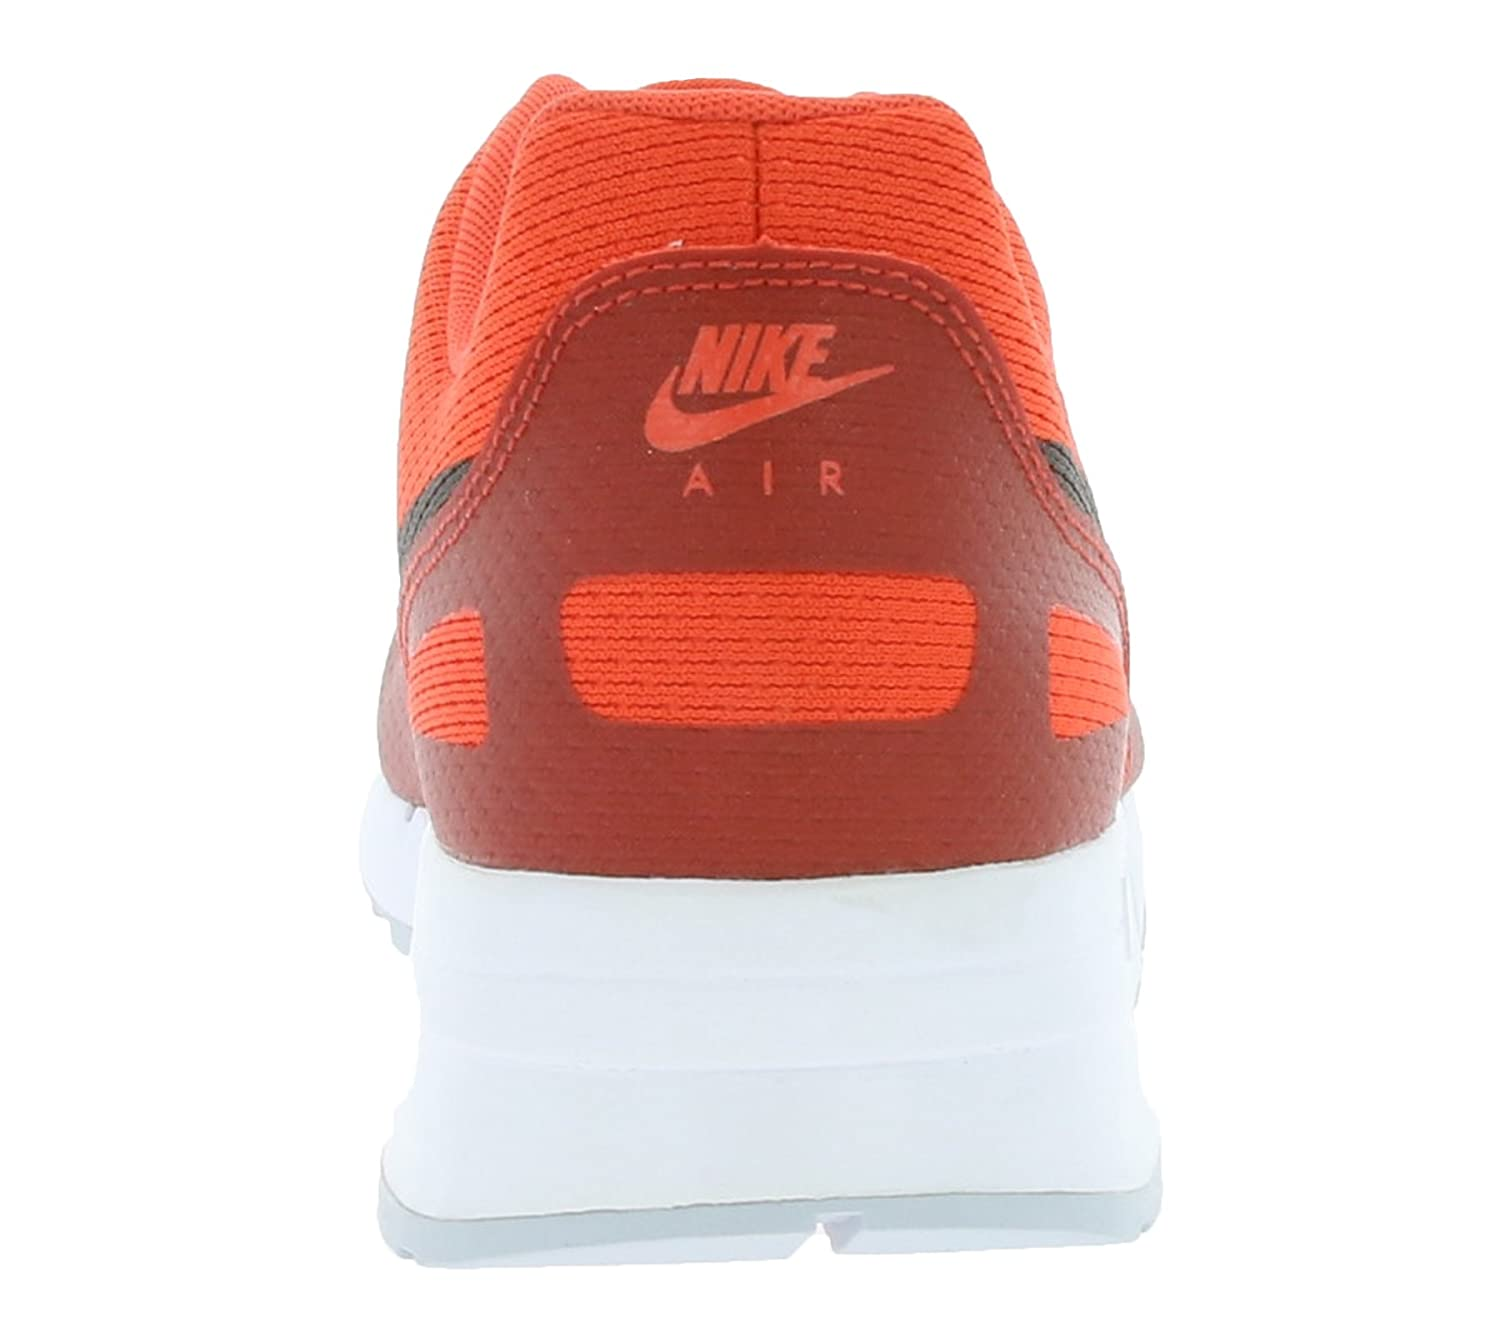 e22990a4ff19 NIKE Air Pegasus  89 Engineered Sneaker Red 876111 800  Amazon.co.uk  Shoes    Bags